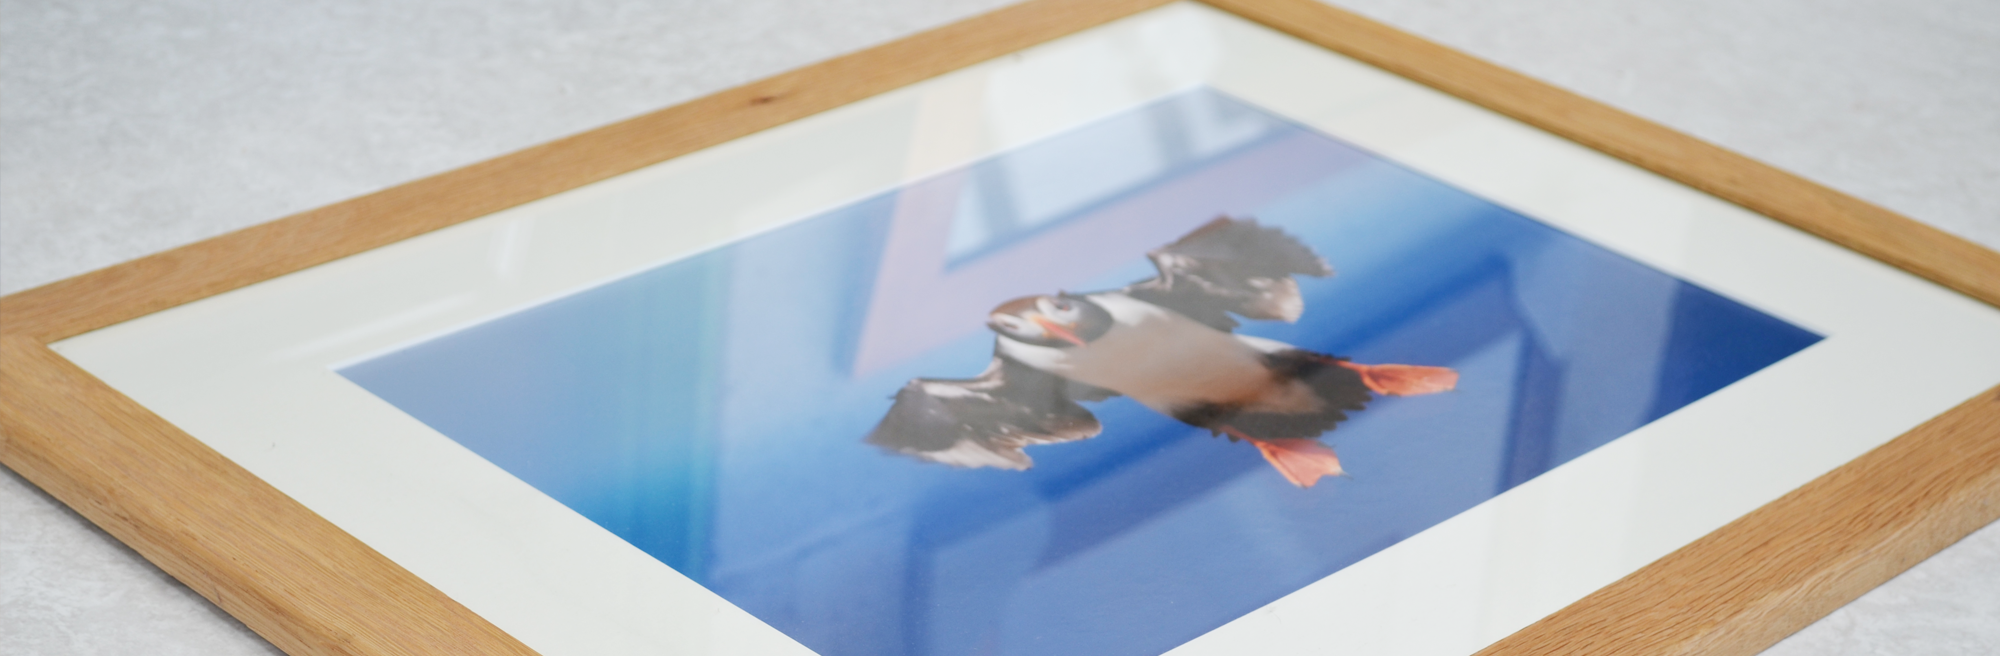 Custom picture framing of a Puffin in flight.